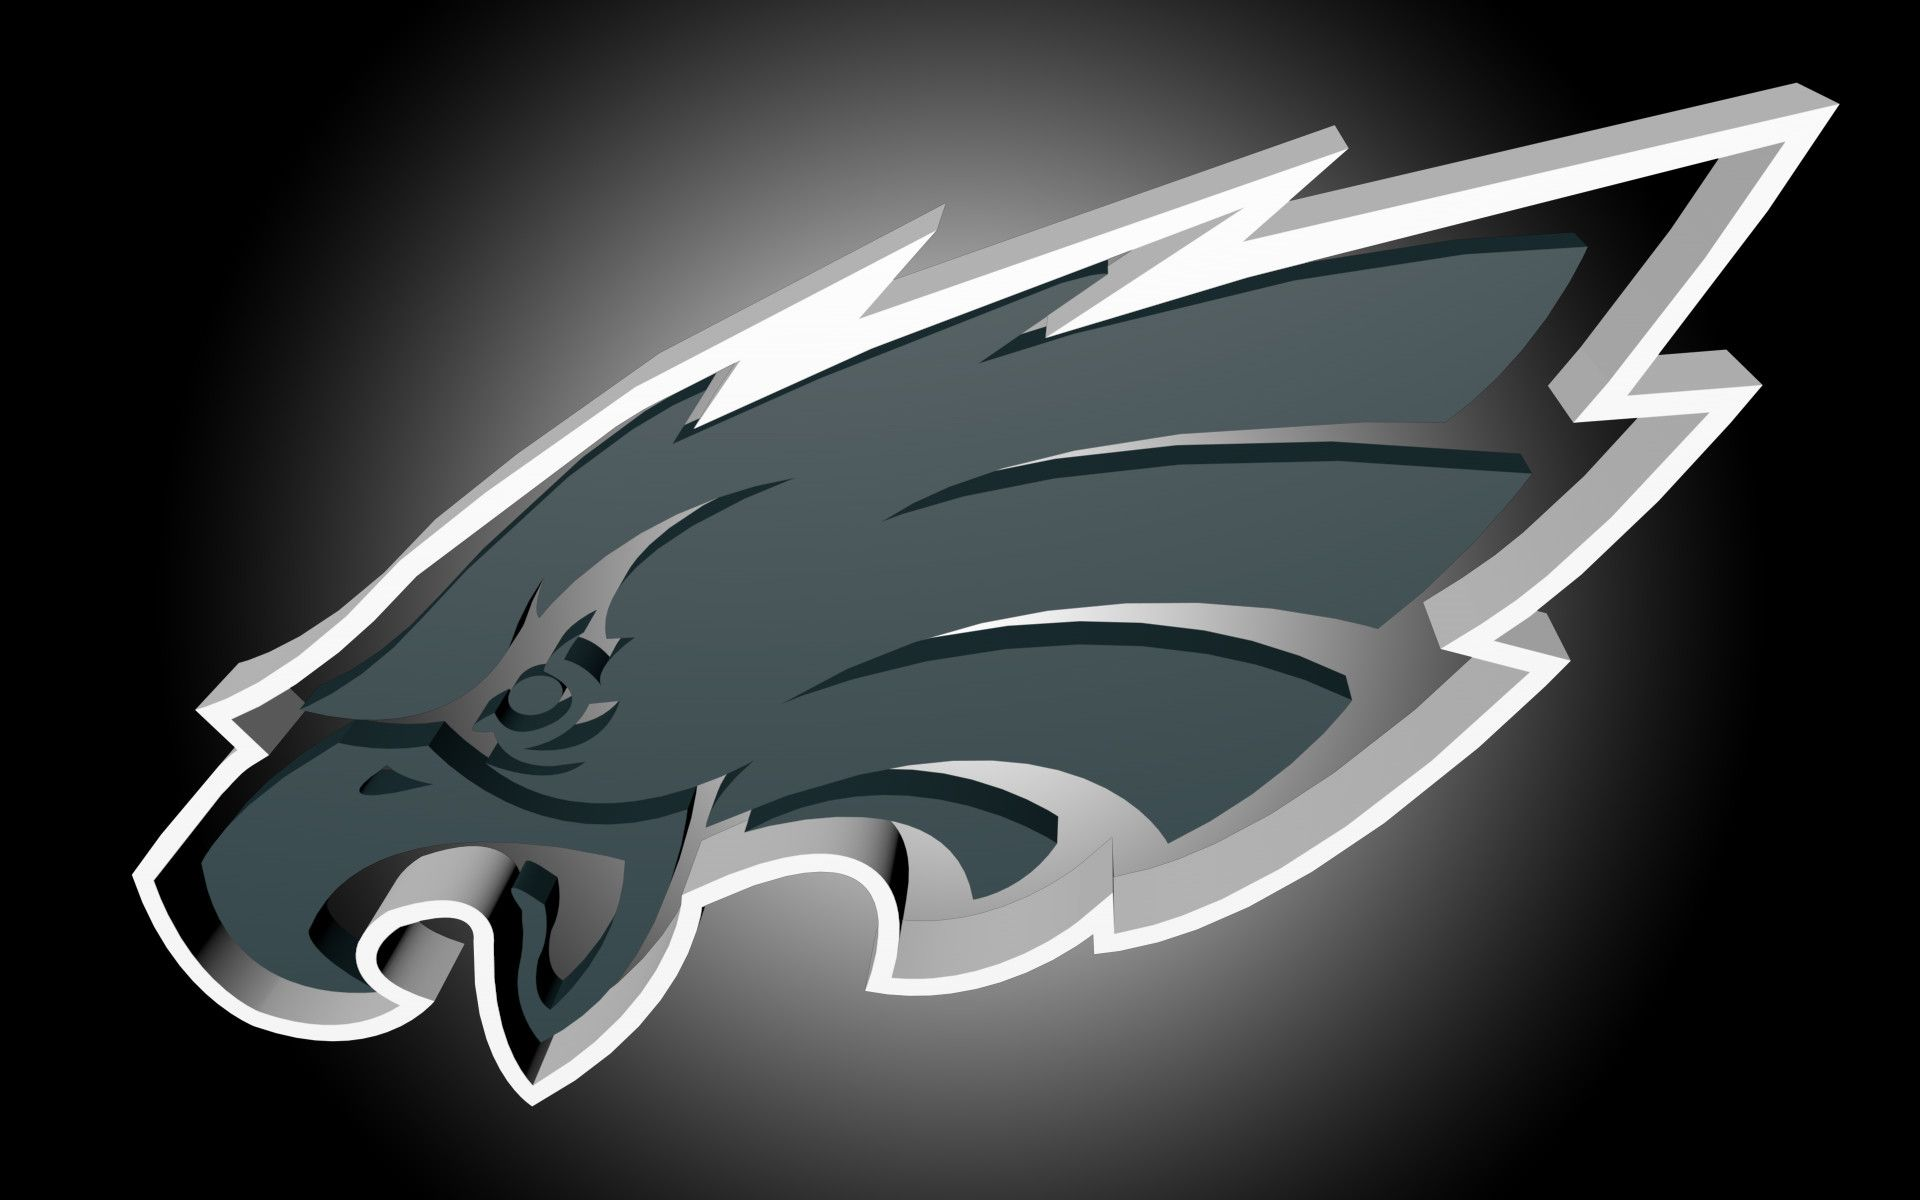 phila.eagles 2015 schedule